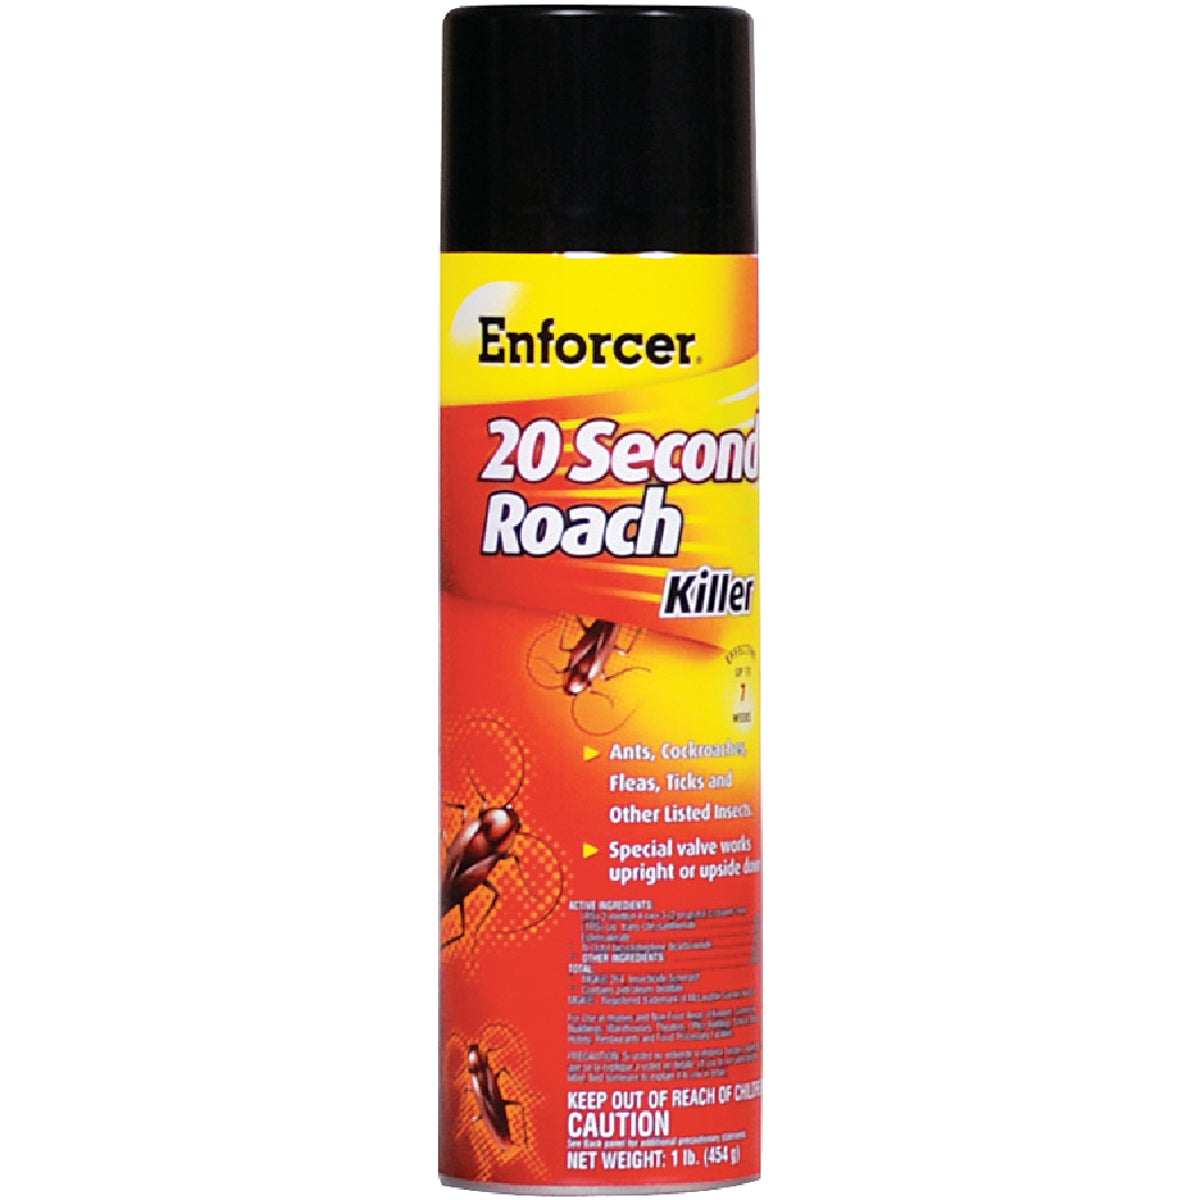 20-SECOND ROACH KILLER